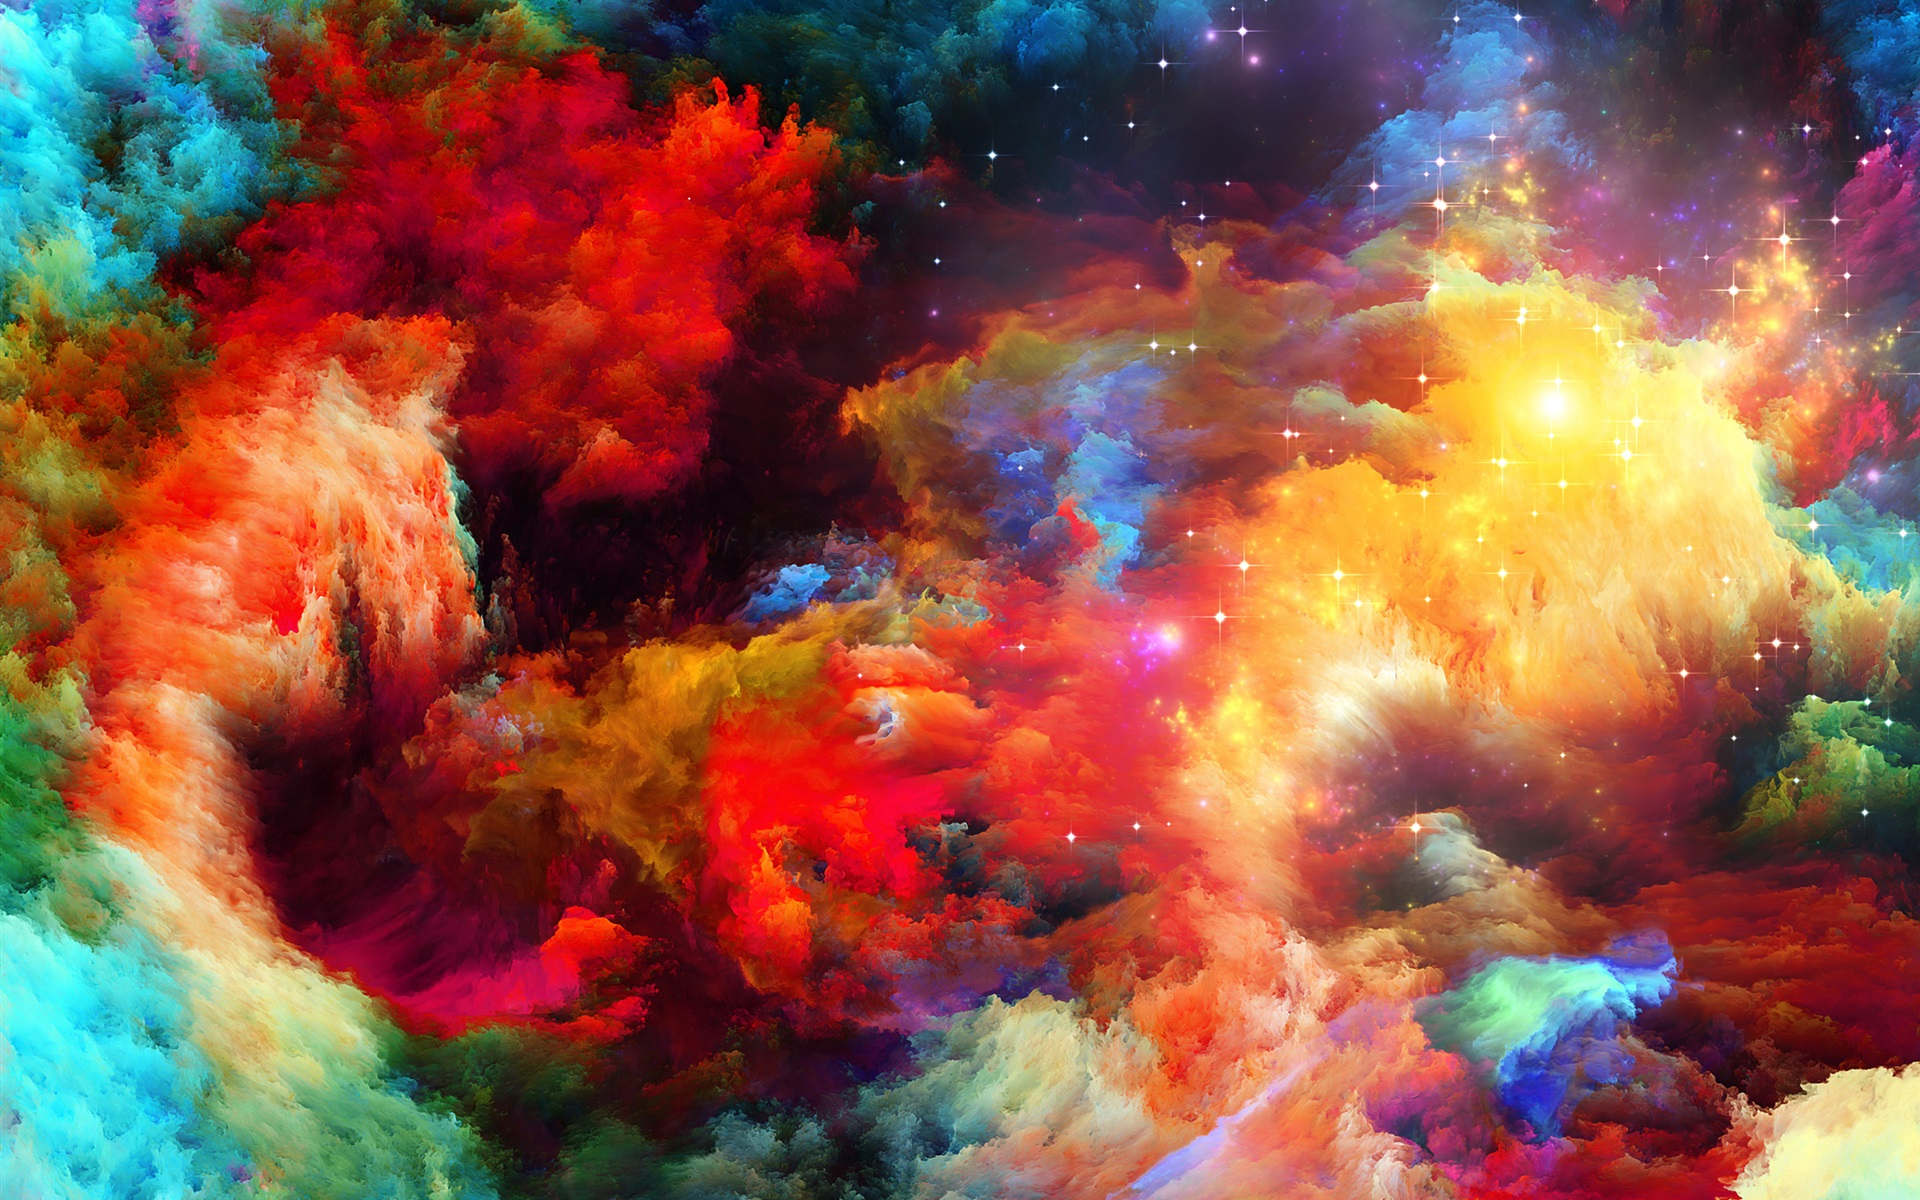 Wallpaper Colorful Space, Abstract Design, Stars 2560x1920